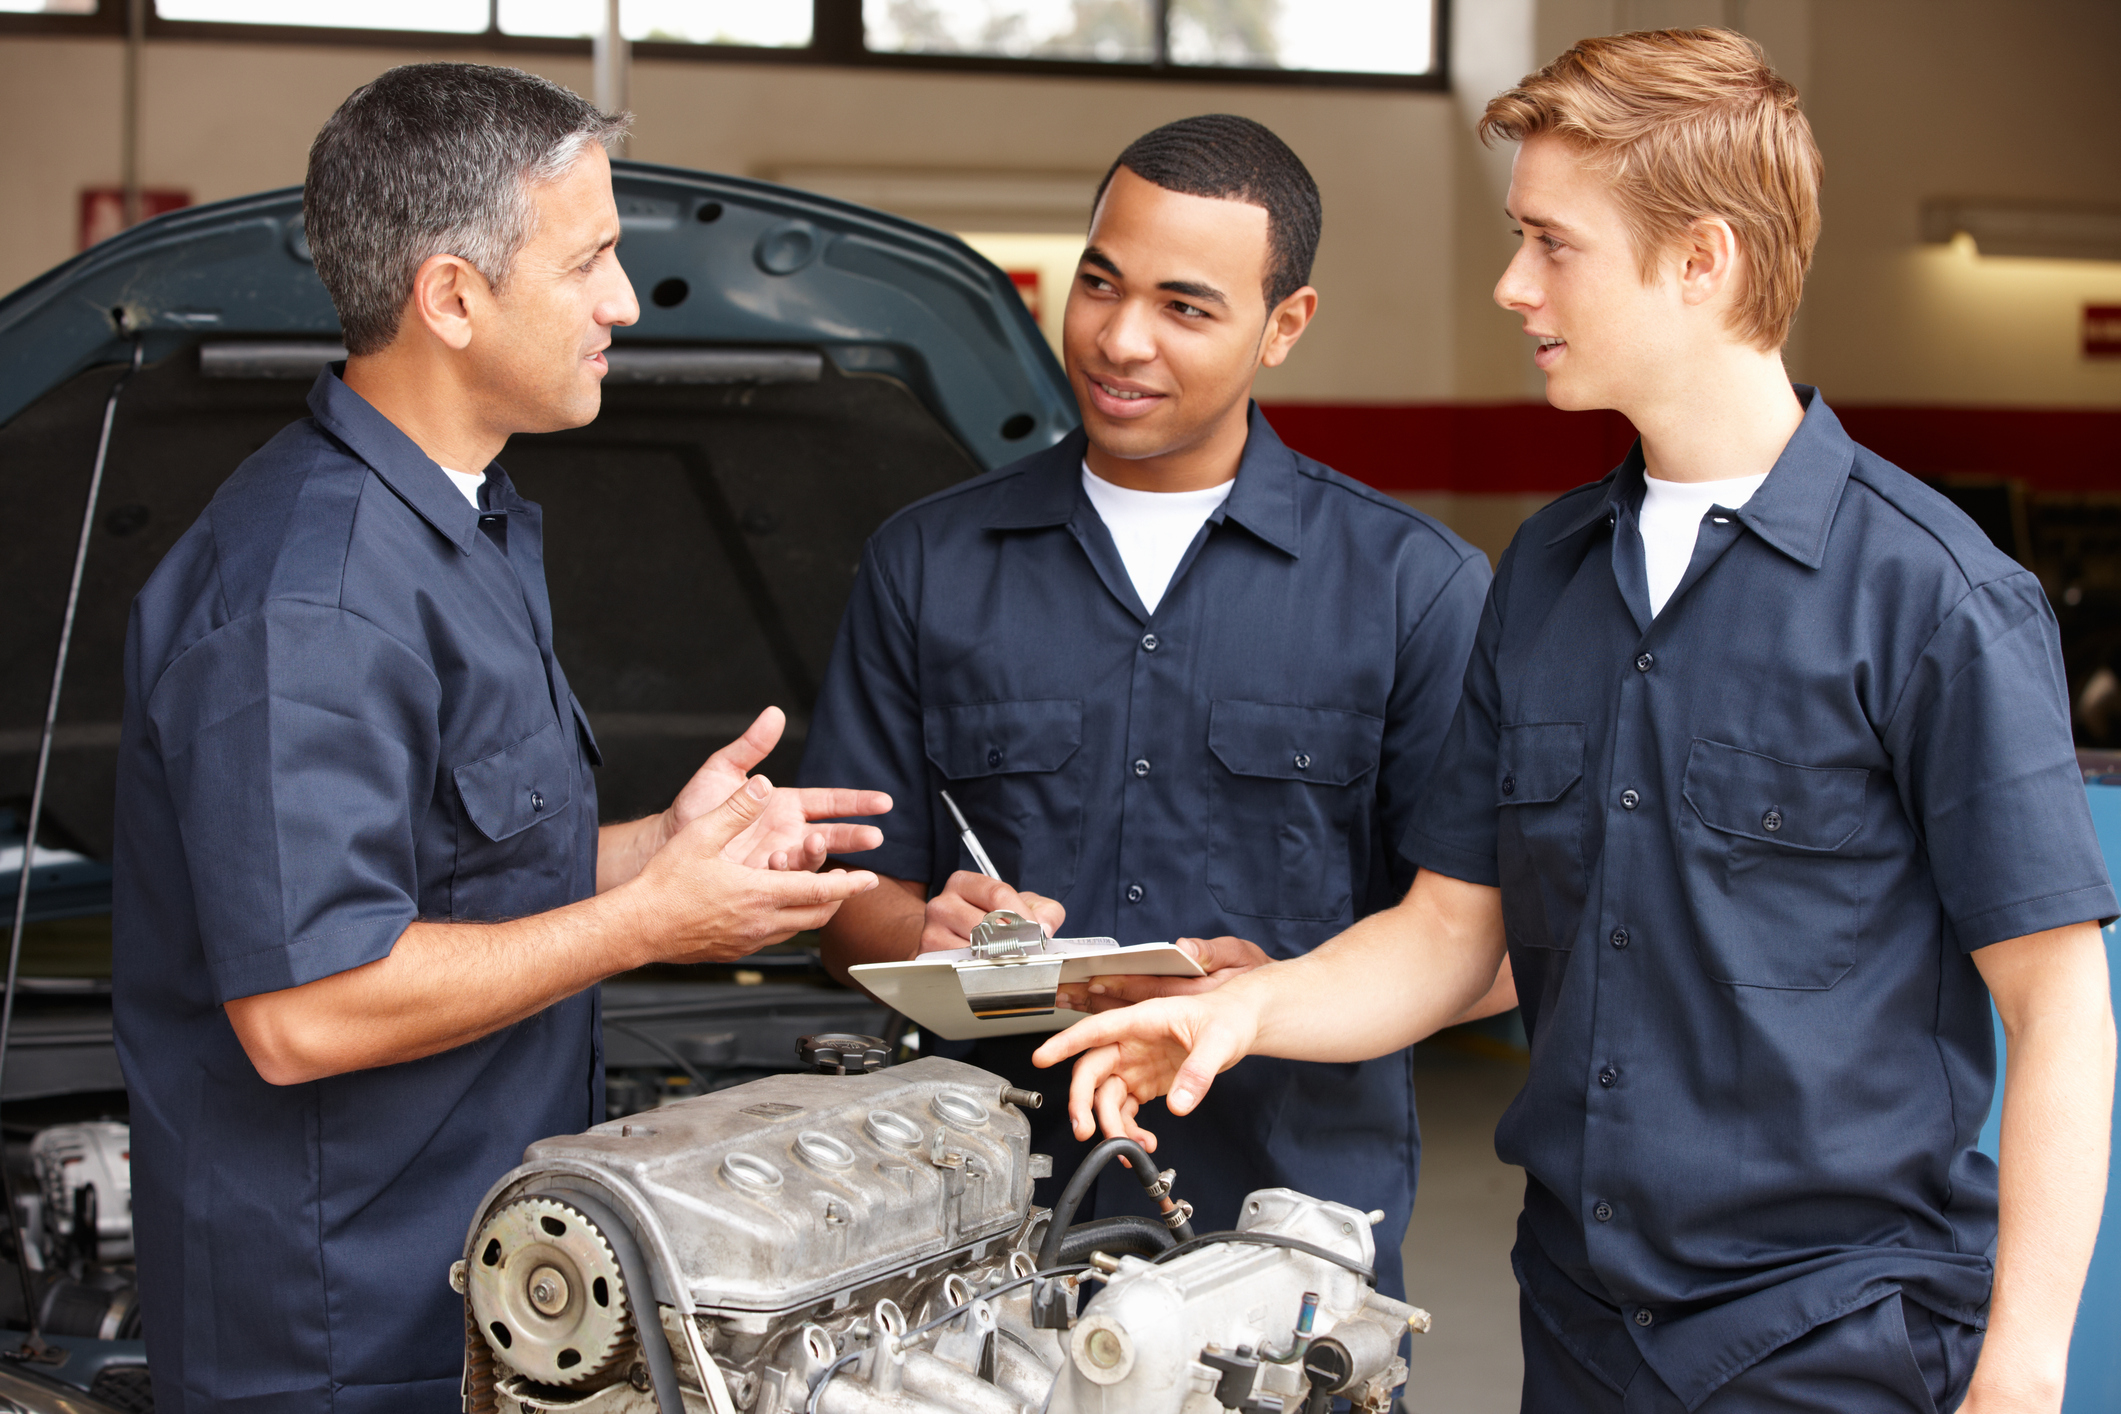 Mechanics diagnosing transmission